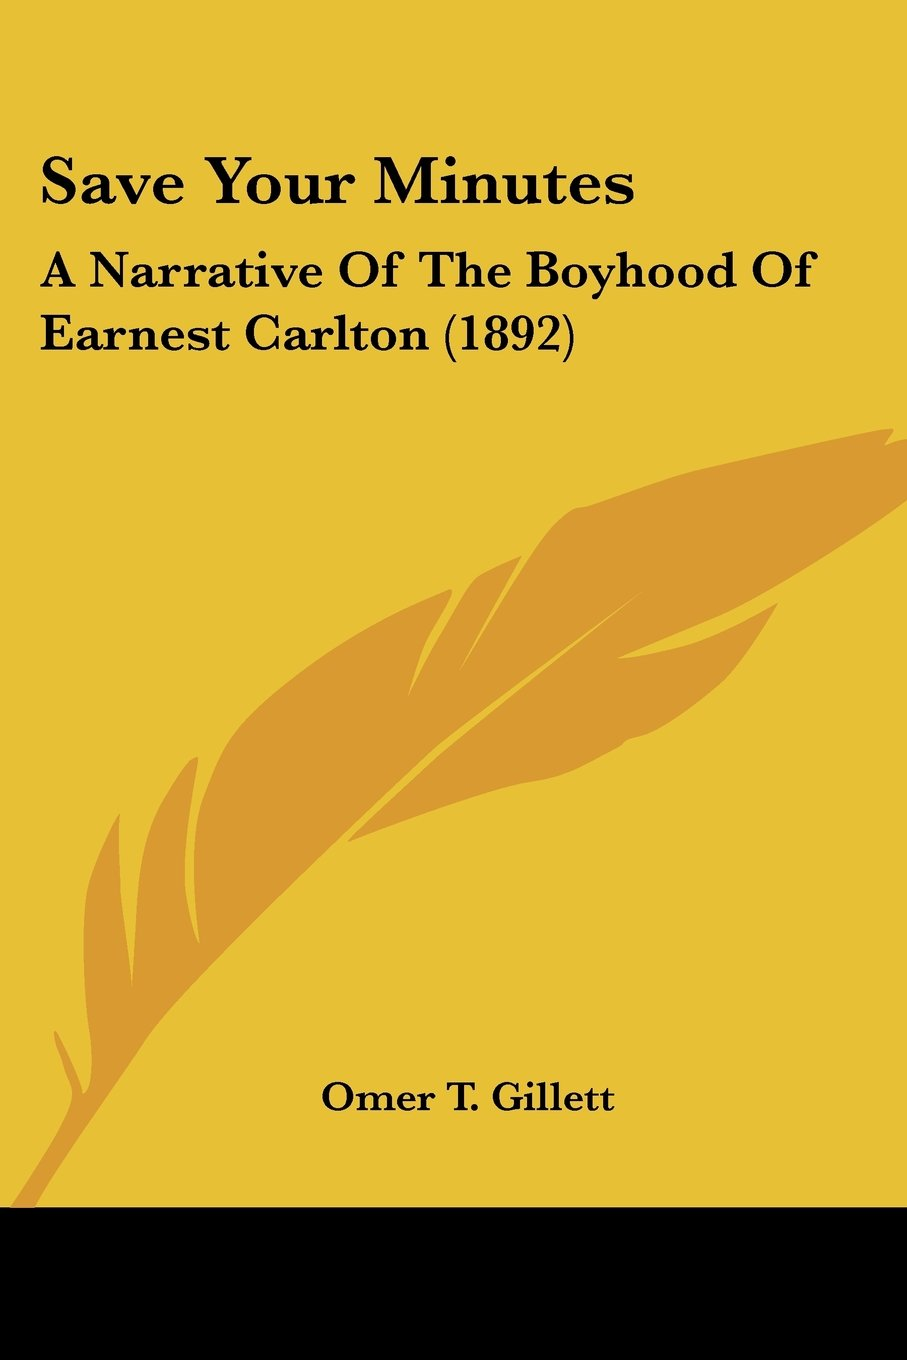 Save Your Minutes: A Narrative Of The Boyhood Of Earnest Carlton (1892) pdf